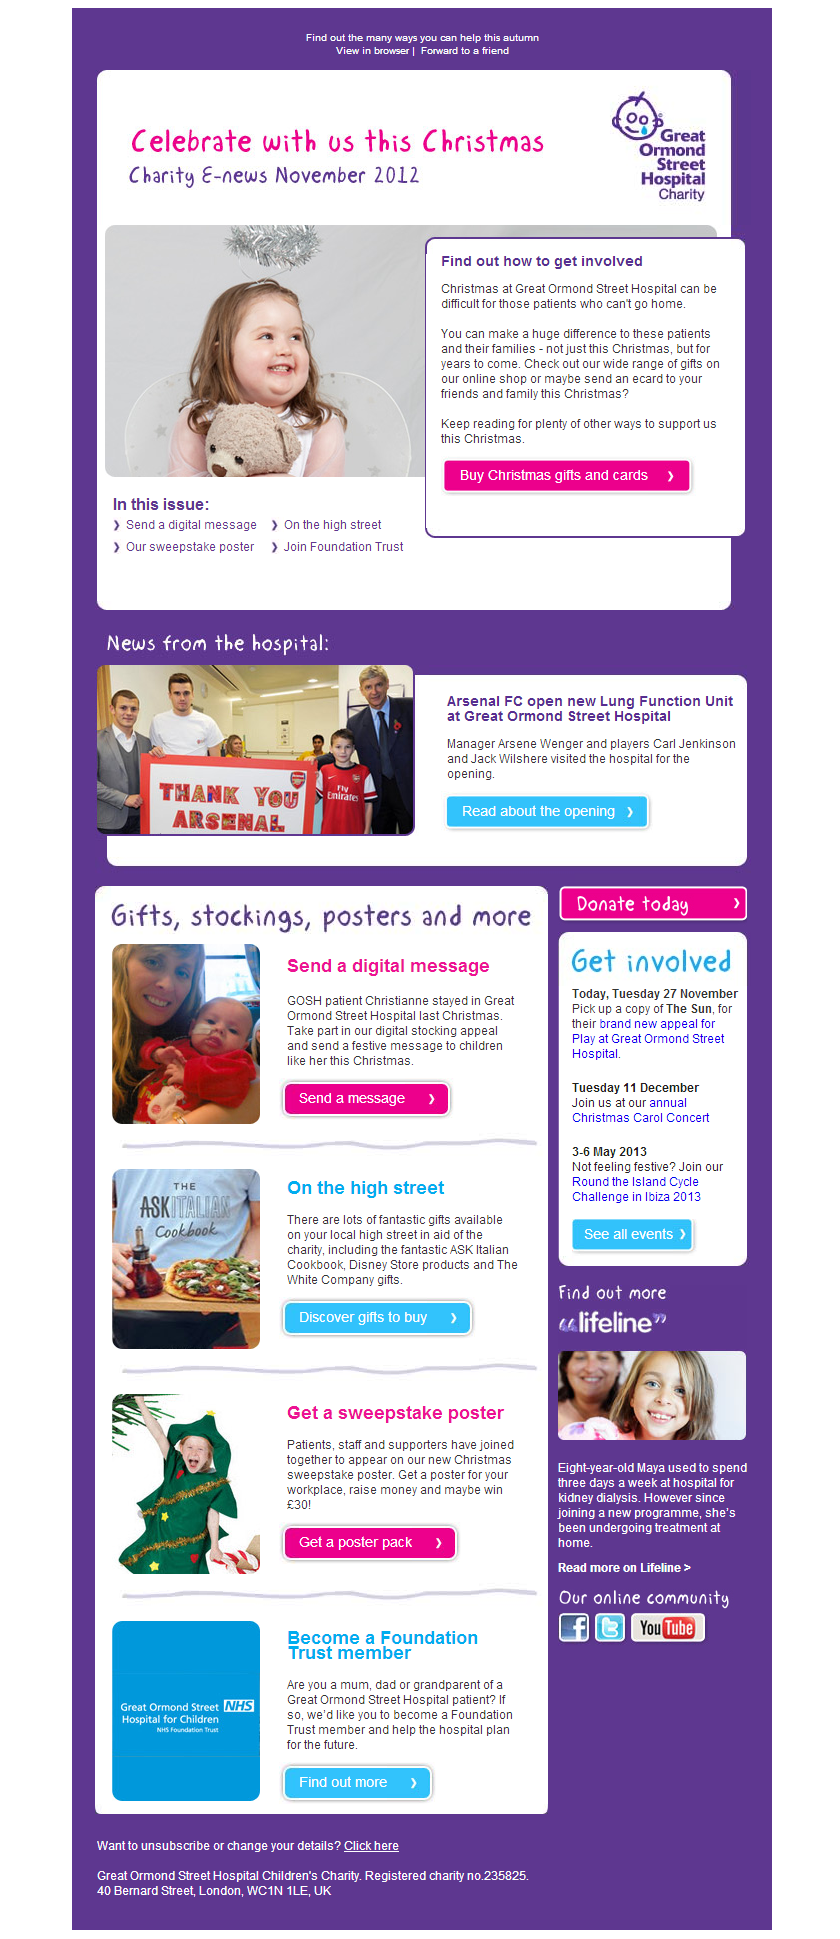 Great Ormond Street Hospital - Charity E-news November